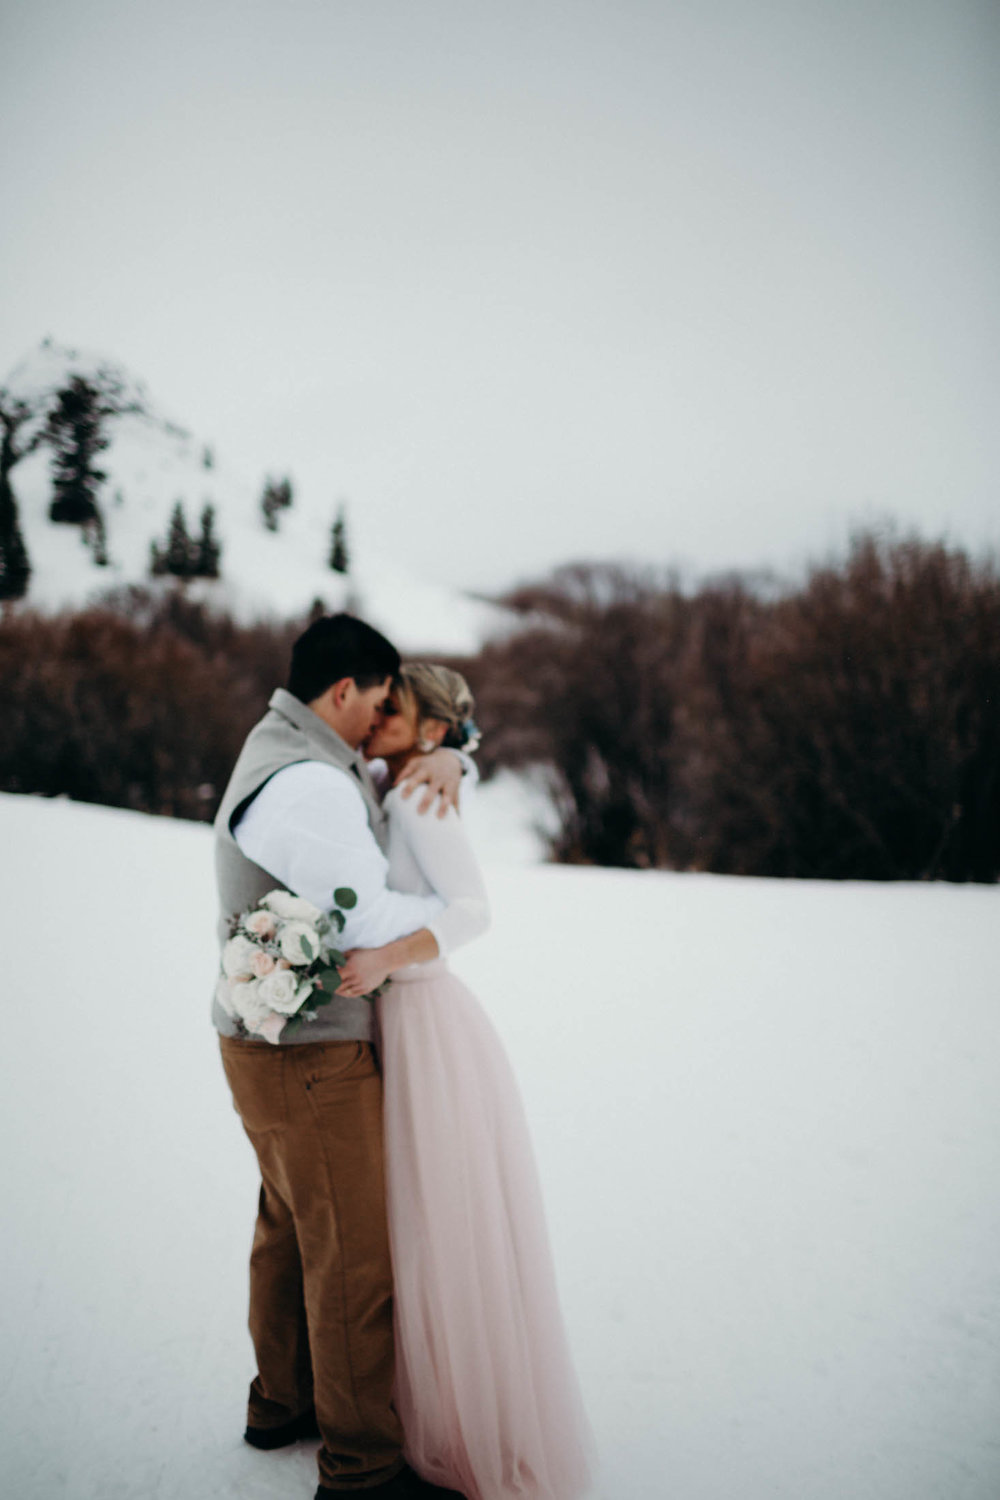 H_J_SunValley_winter_wedding-21.jpg